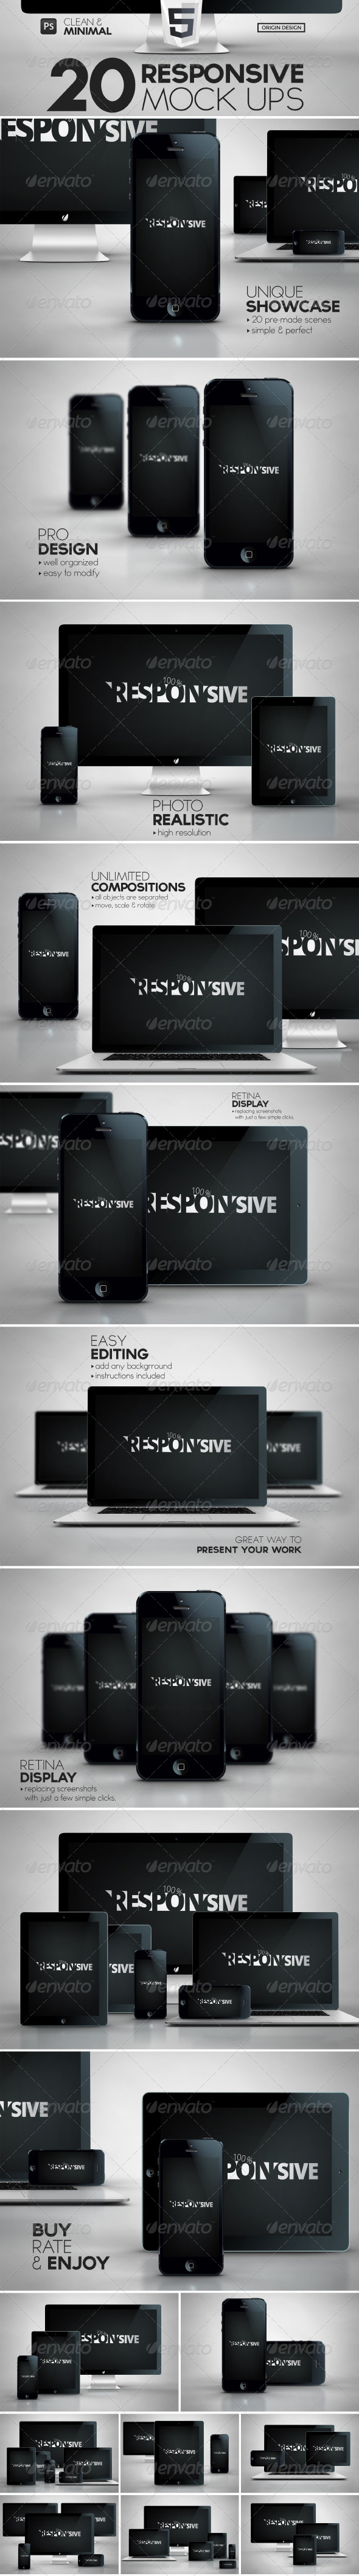 GraphicRiver 20 Responsive iScreens Mock Up Pack 5389510